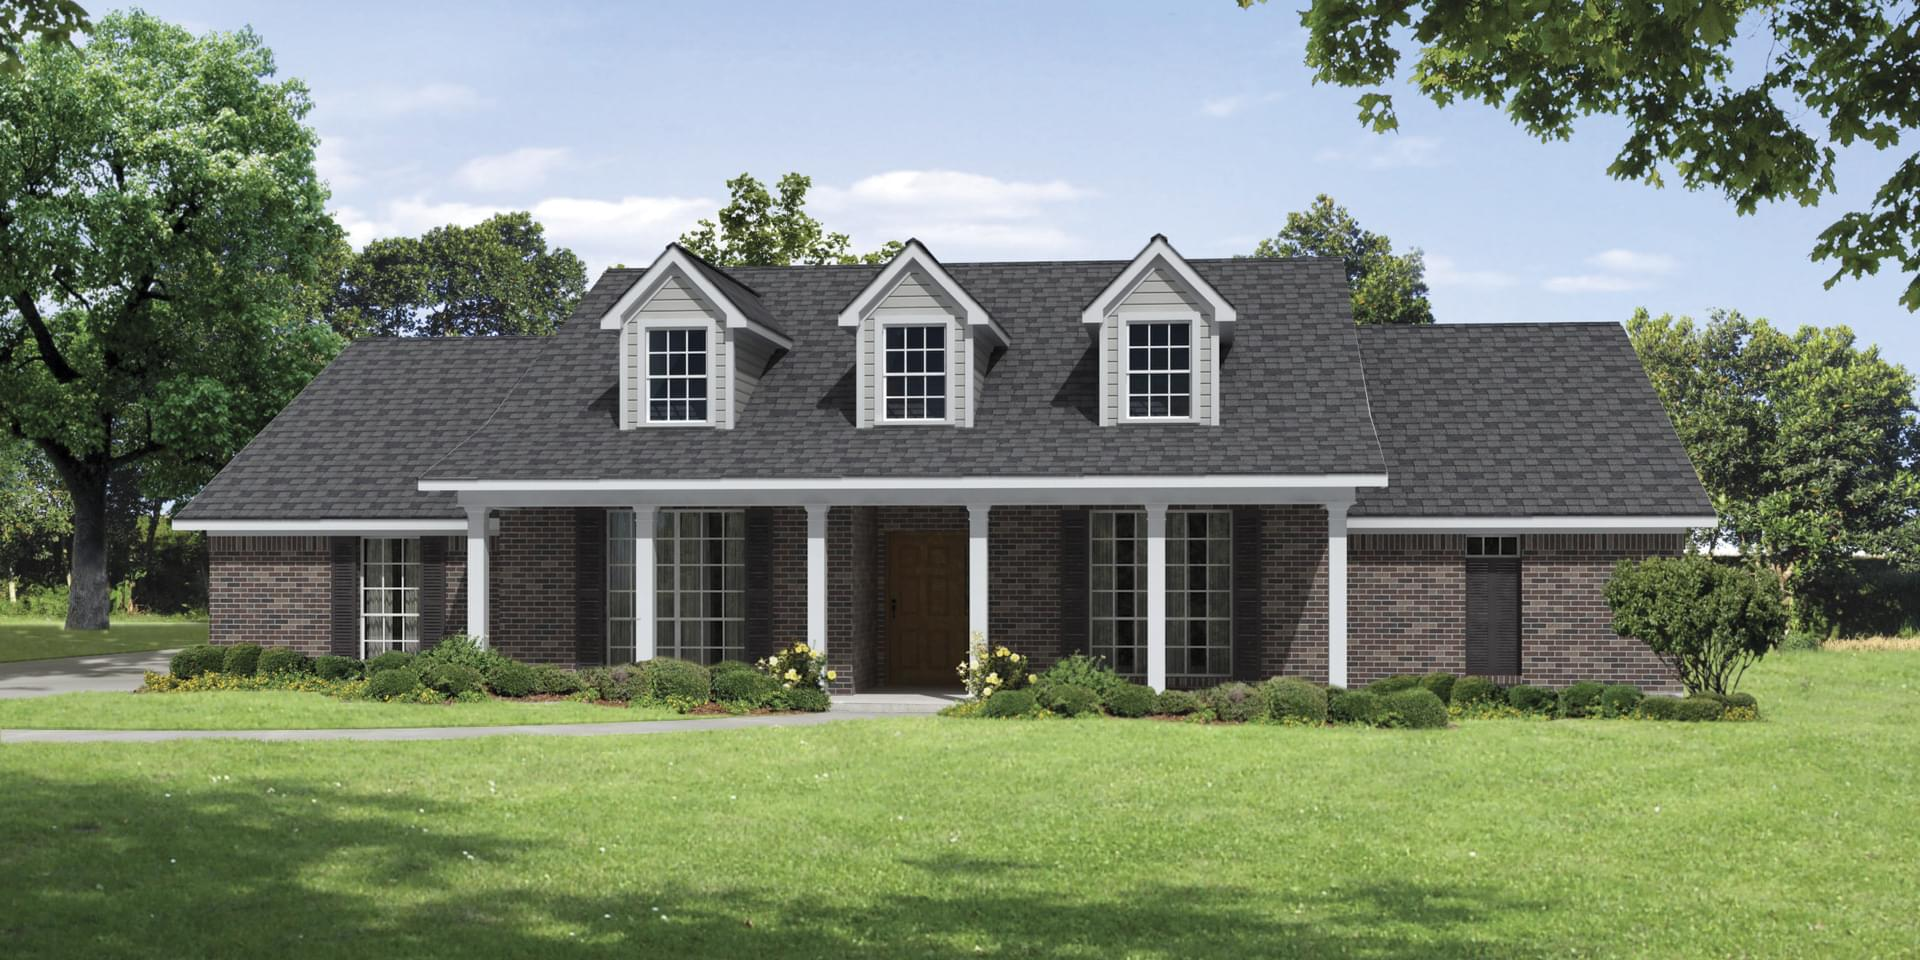 The Brisco Custom Home Plan from Tilson Homes